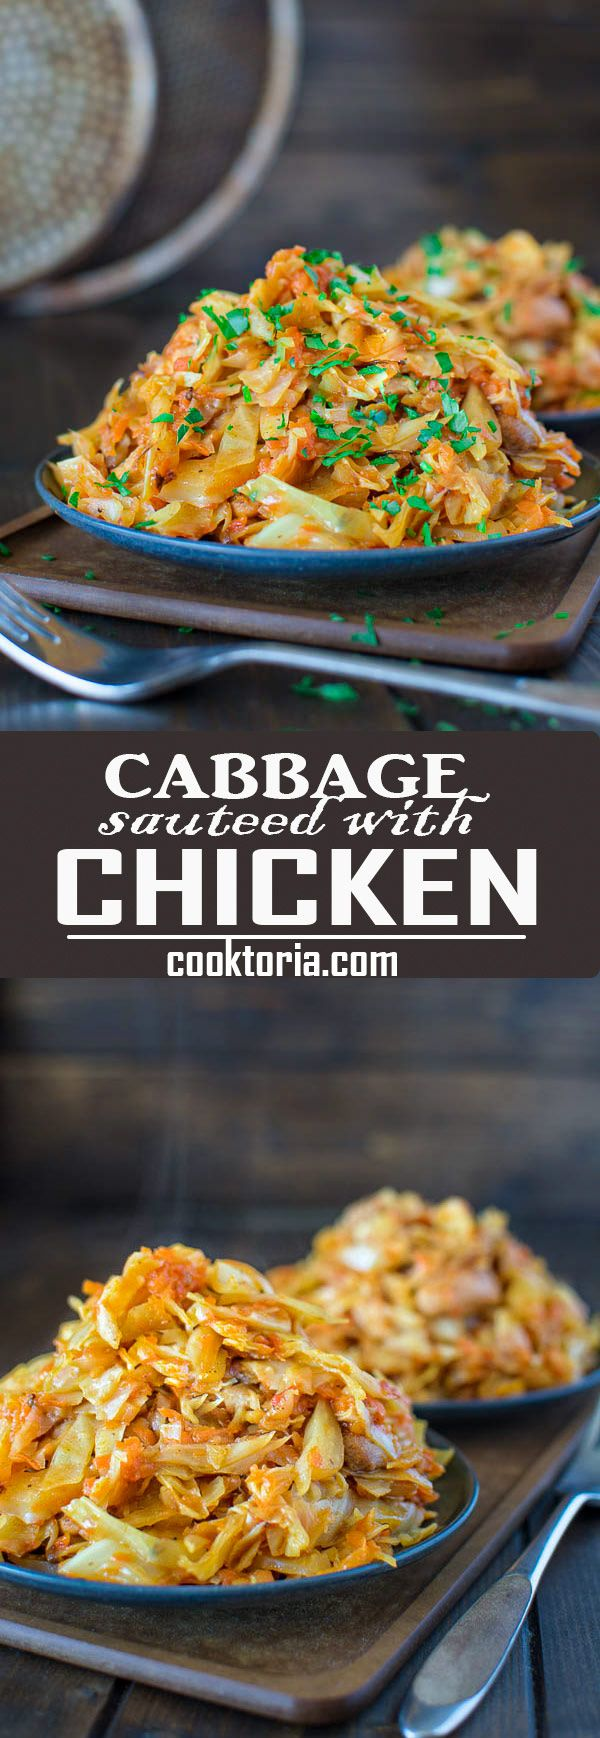 183466 best best of food blogger recipes images on pinterest cabbage sauteed with chicken forumfinder Image collections